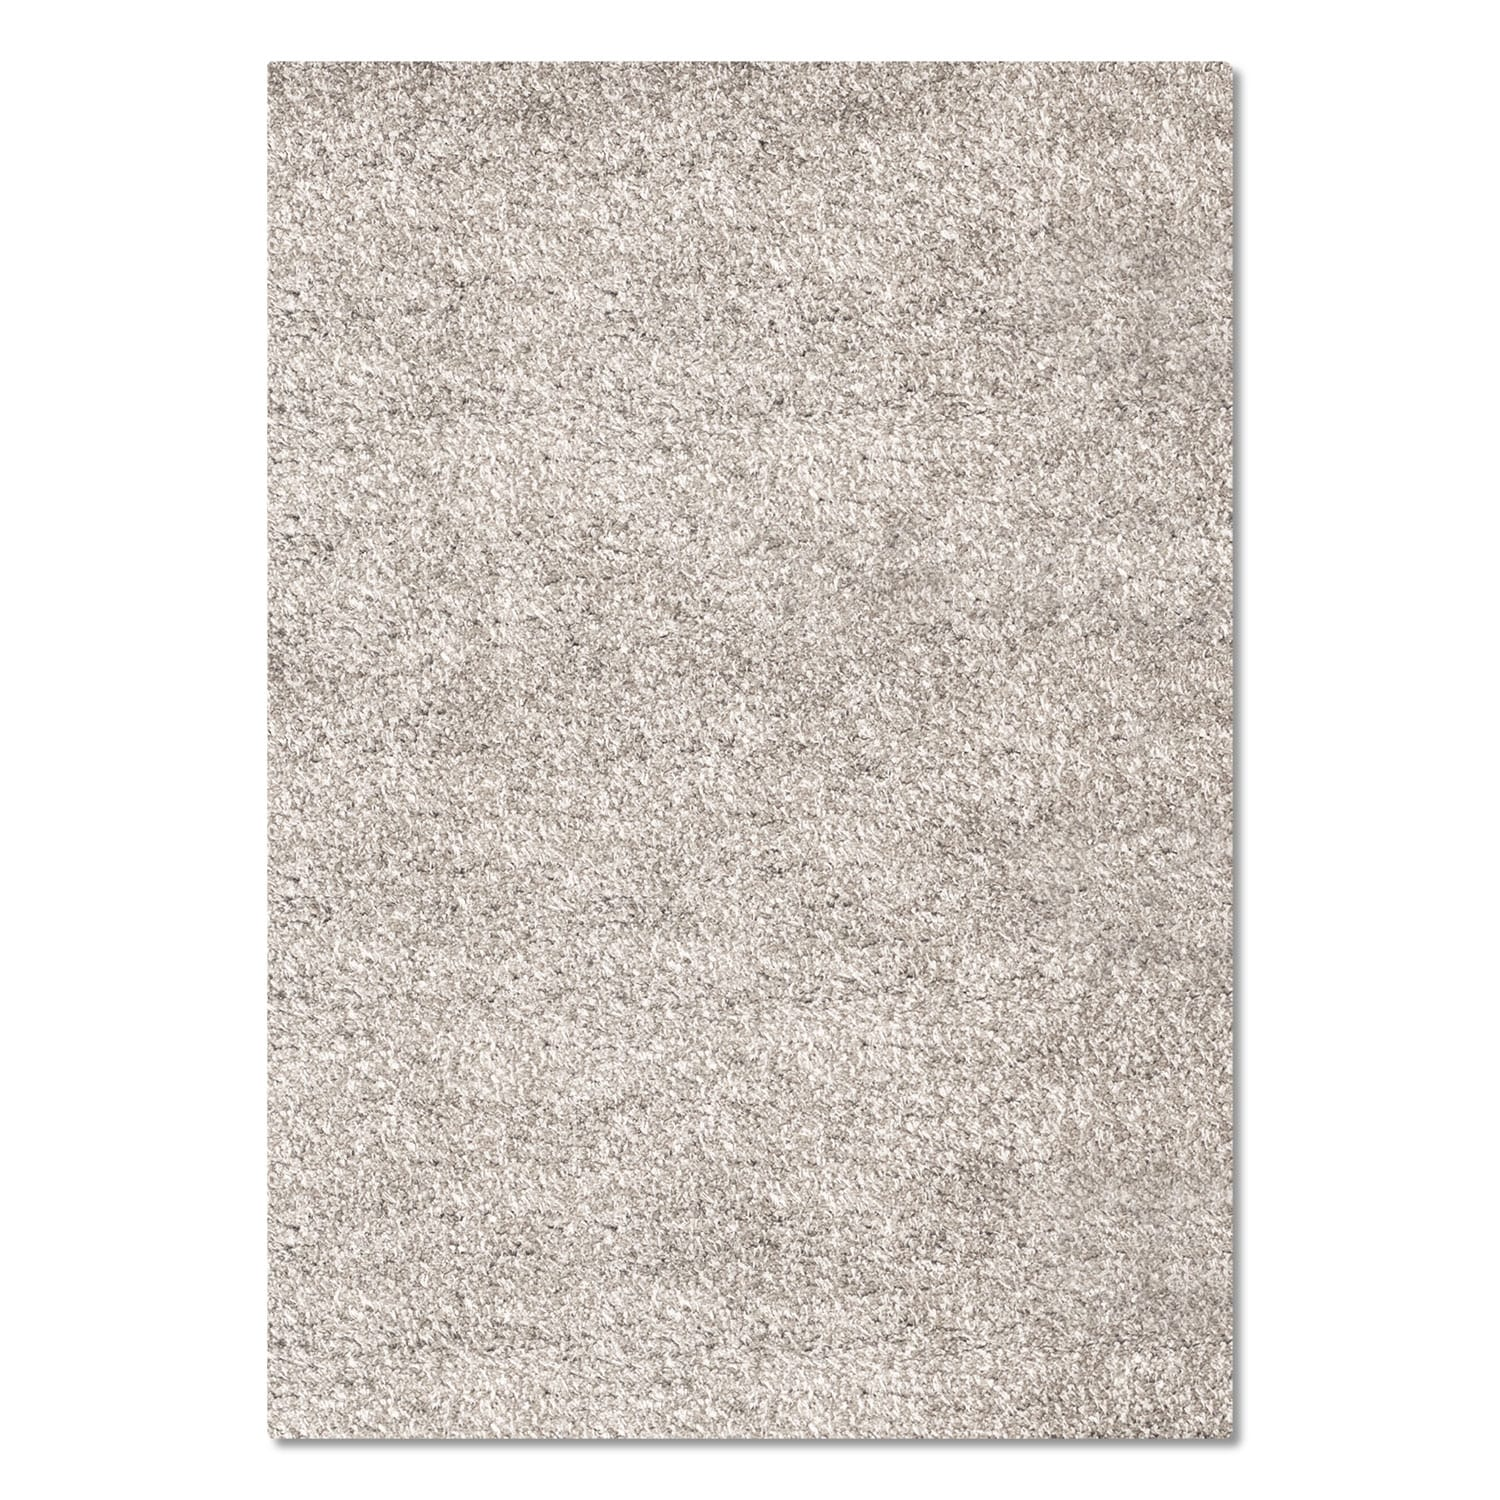 Rugs - Comfort Shag Area Rug - Light Gray